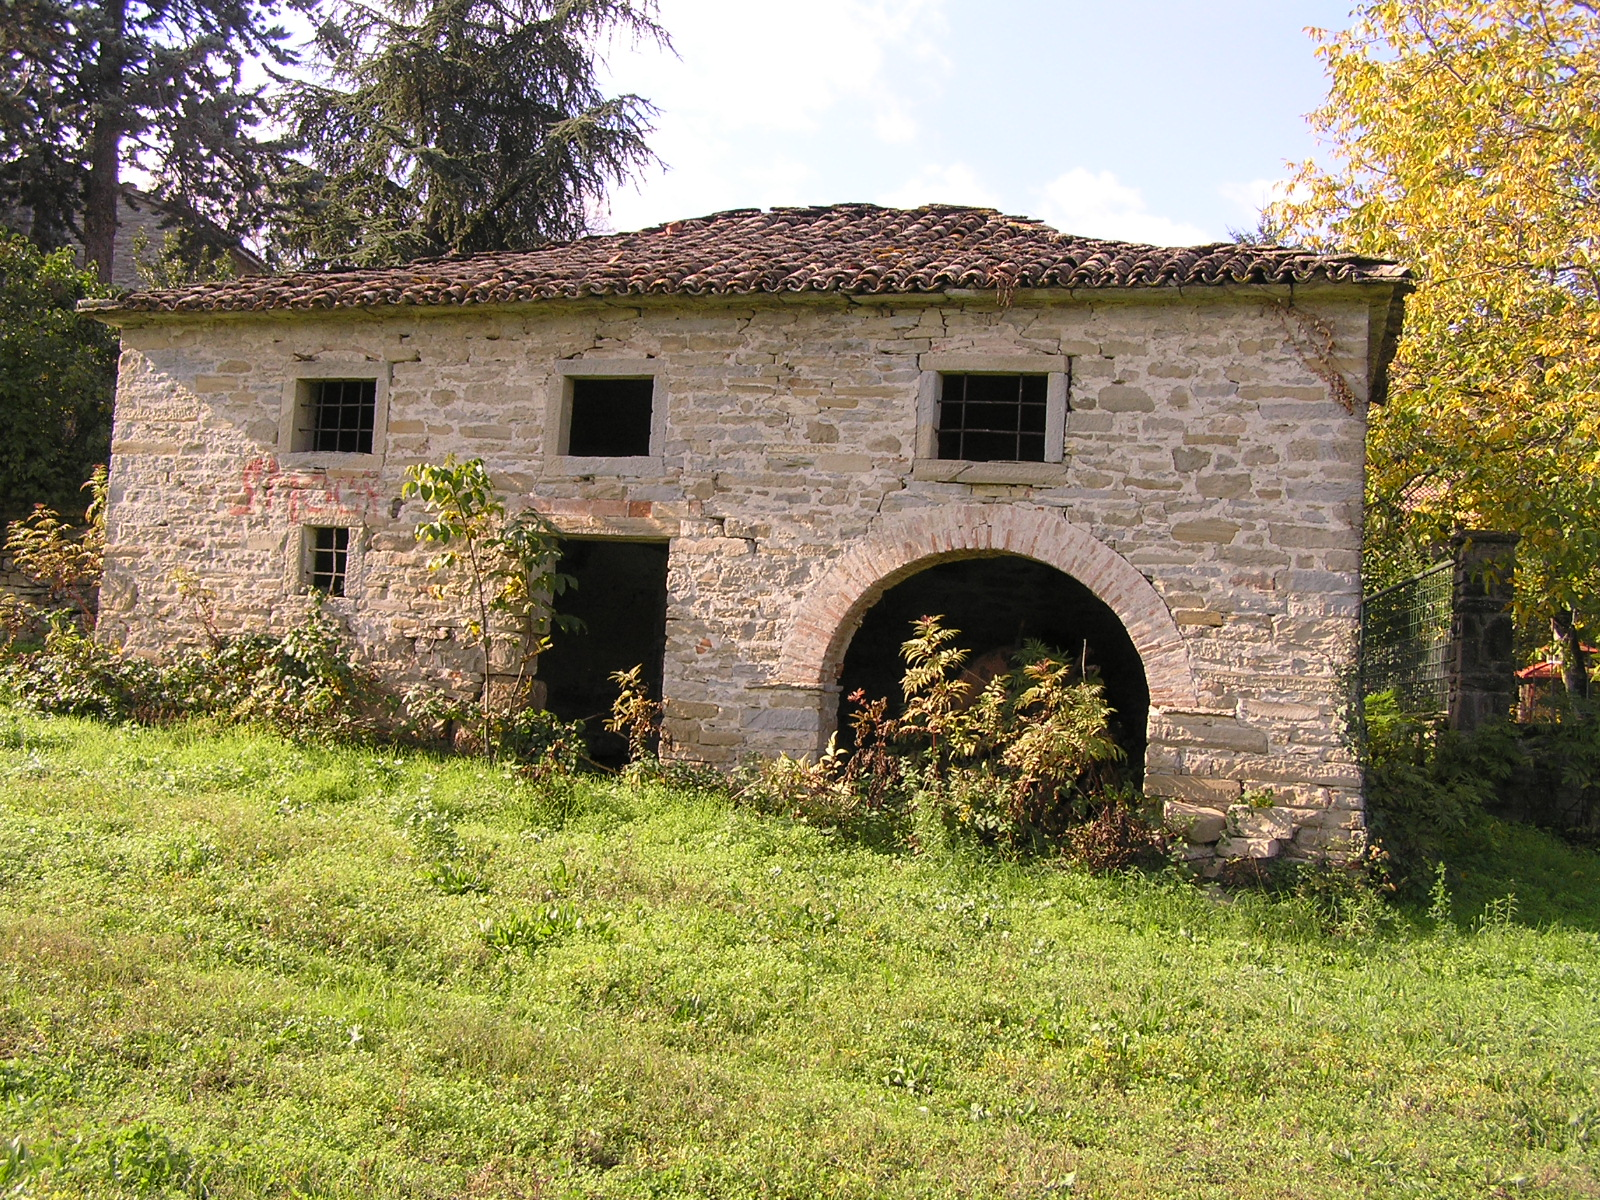 Case Rurali Toscane : File:galeata pianetto edifici rurali.jpg wikipedia